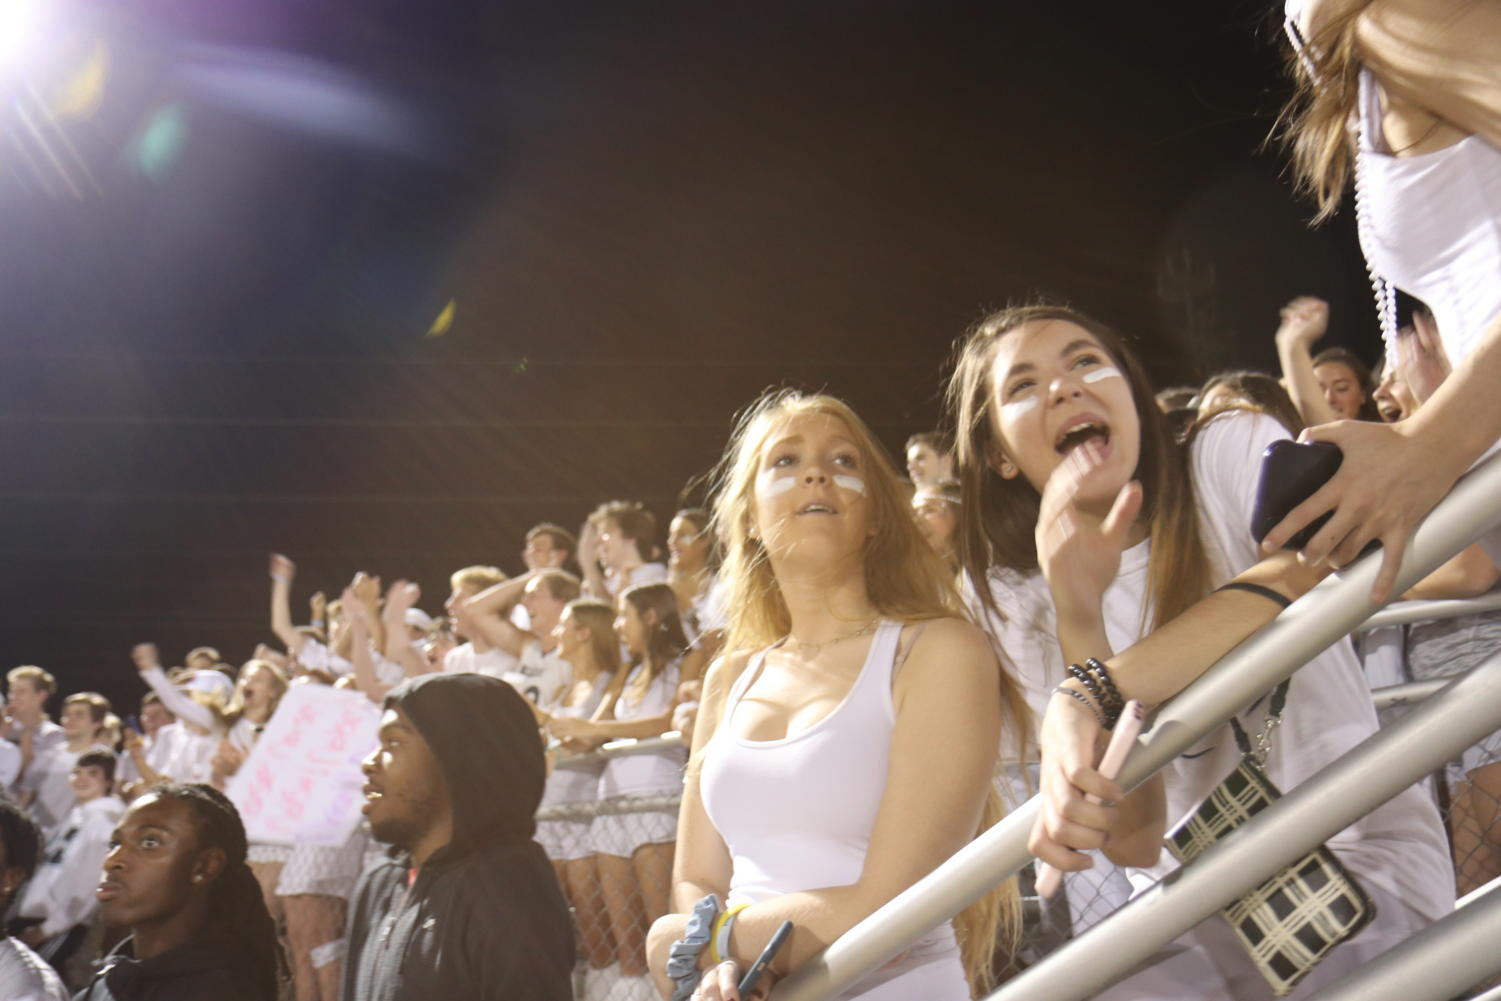 Kenzie+Simmons%2C+senior%2C+watches+the+game+dressed+in+white+as+per+the+game%E2%80%99s+white+out+theme+with+her+friend+Jordan+Boschen%2C+senior.+Simmons+attends+most+football+games.+%E2%80%9CI+thought+the+game+was+a+great+bonding+experience+for+our+grade+because+it%E2%80%99s+somewhere+we+all+come+together+and+all+cheer+for+the+same+thing+on+a+team%2C%E2%80%9D+Simmons+said.+